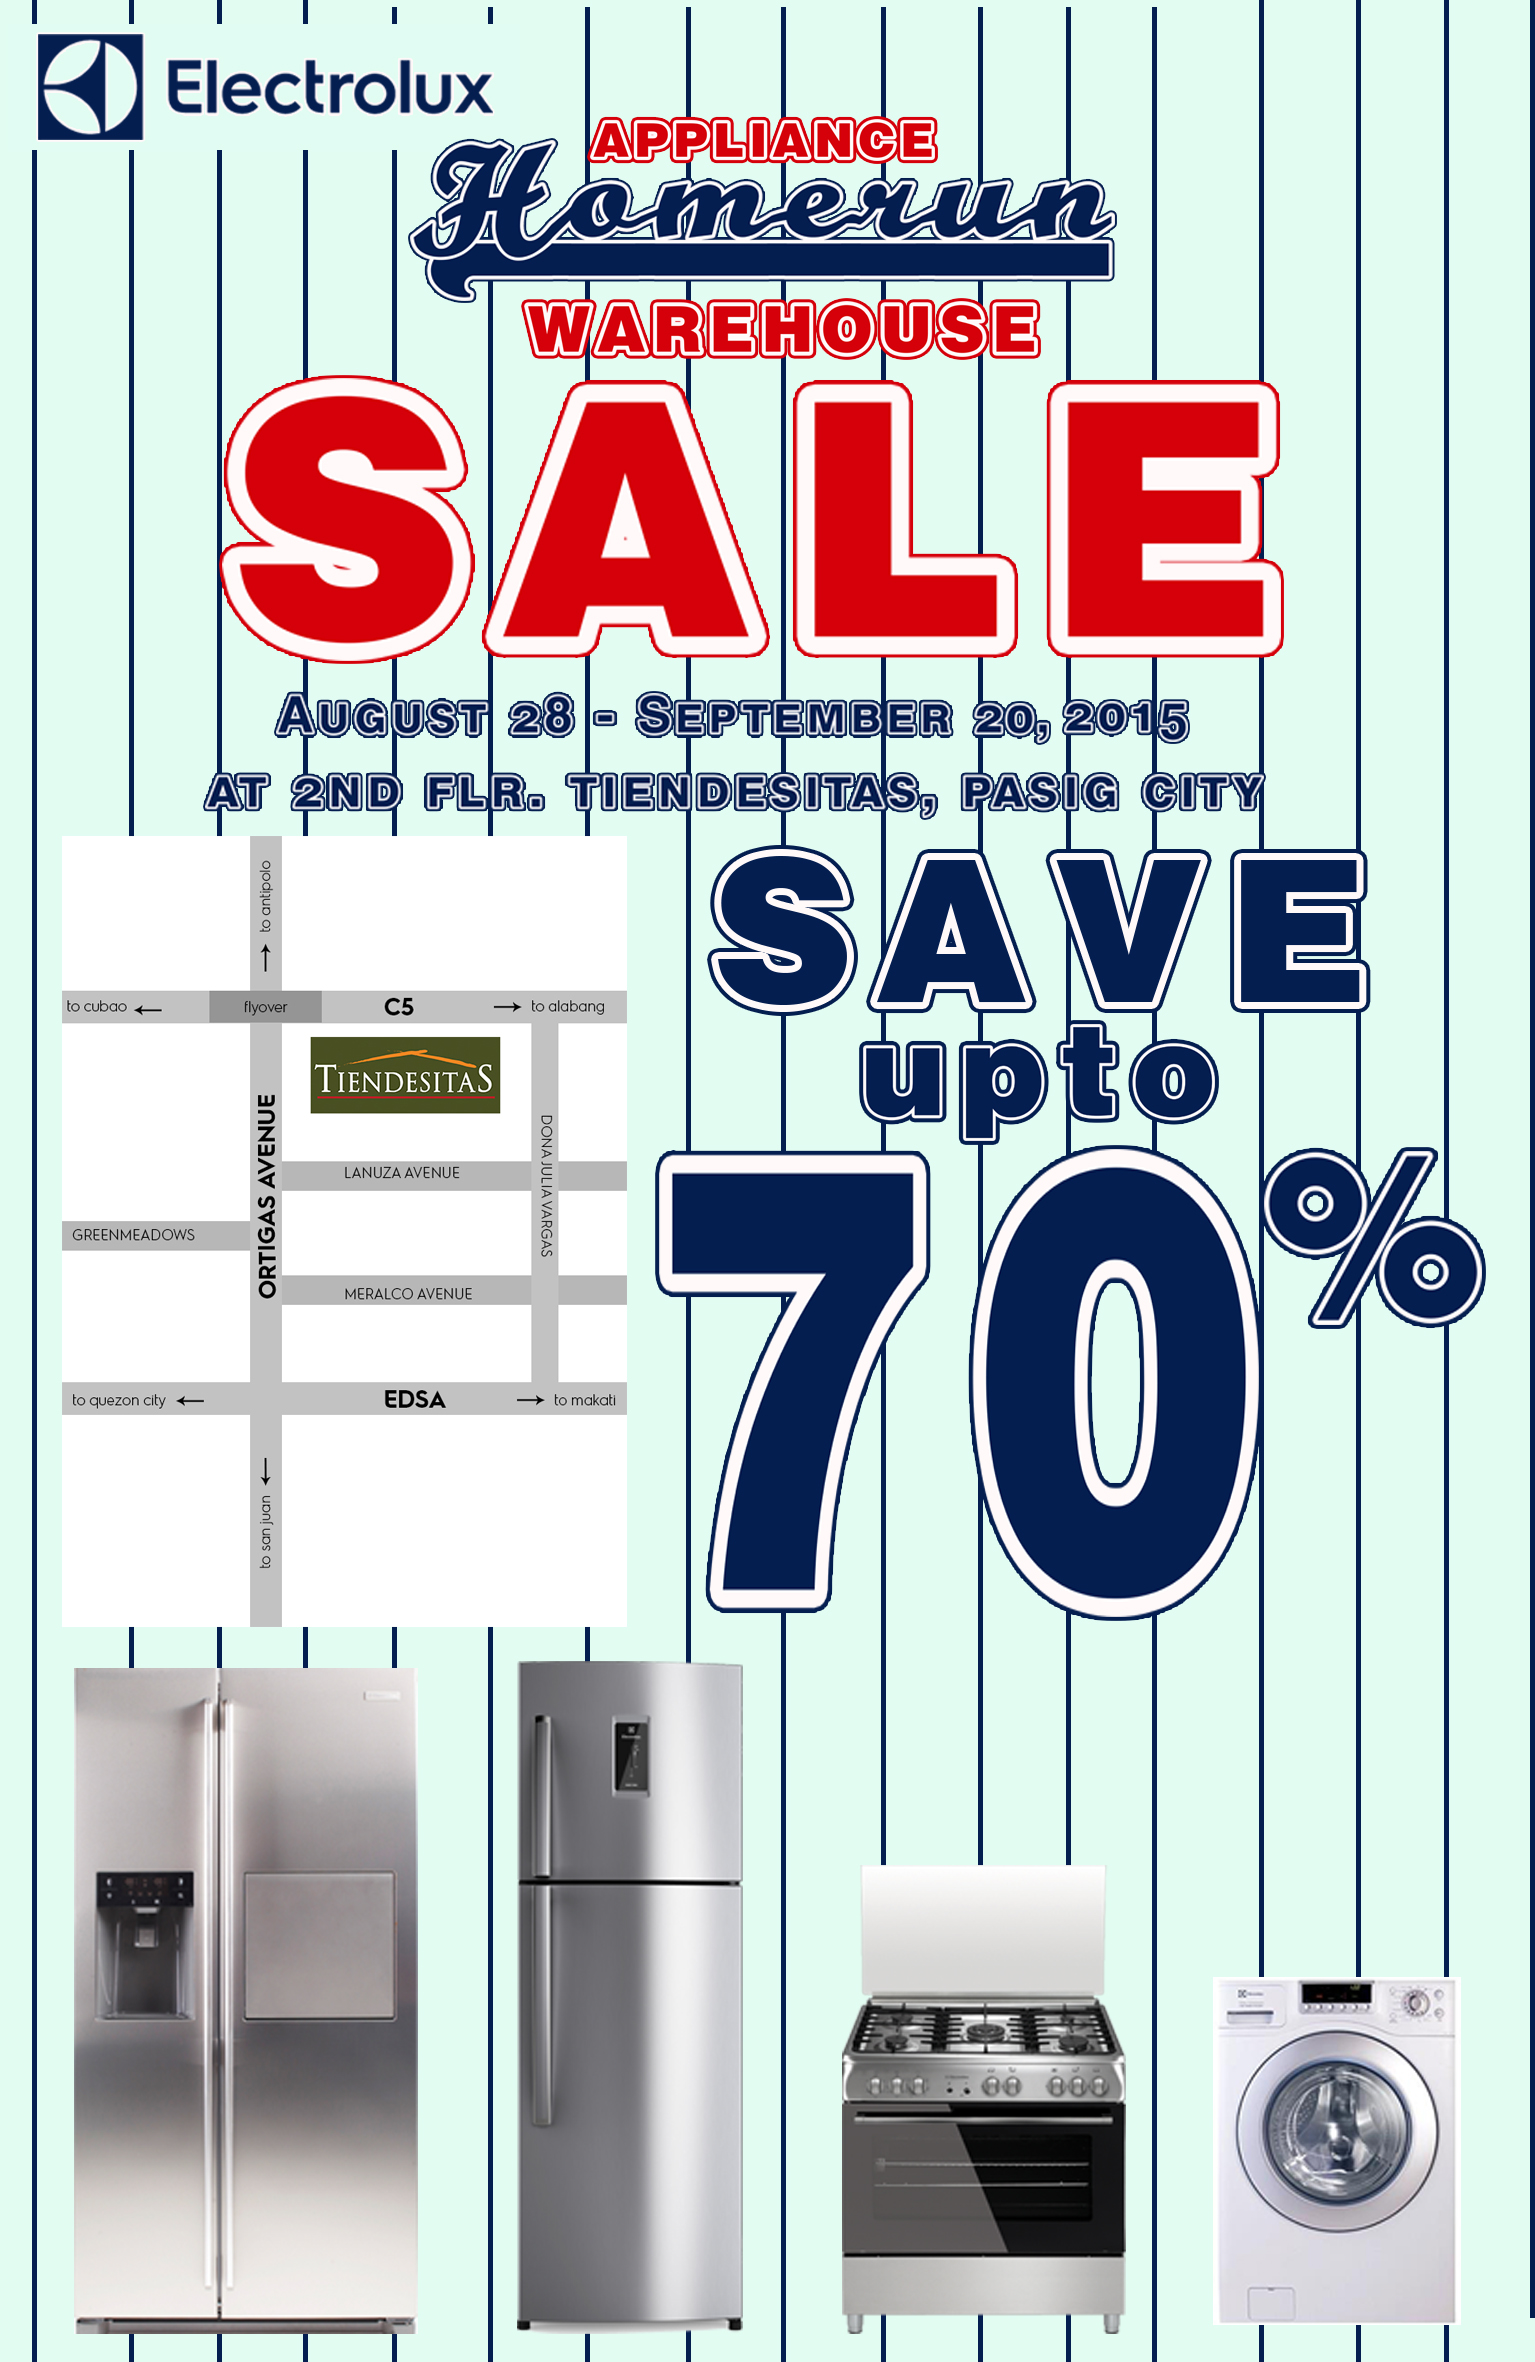 Electrolux Appliance Homerun Warehouse Sale @ Tiendesitas August - September 2015